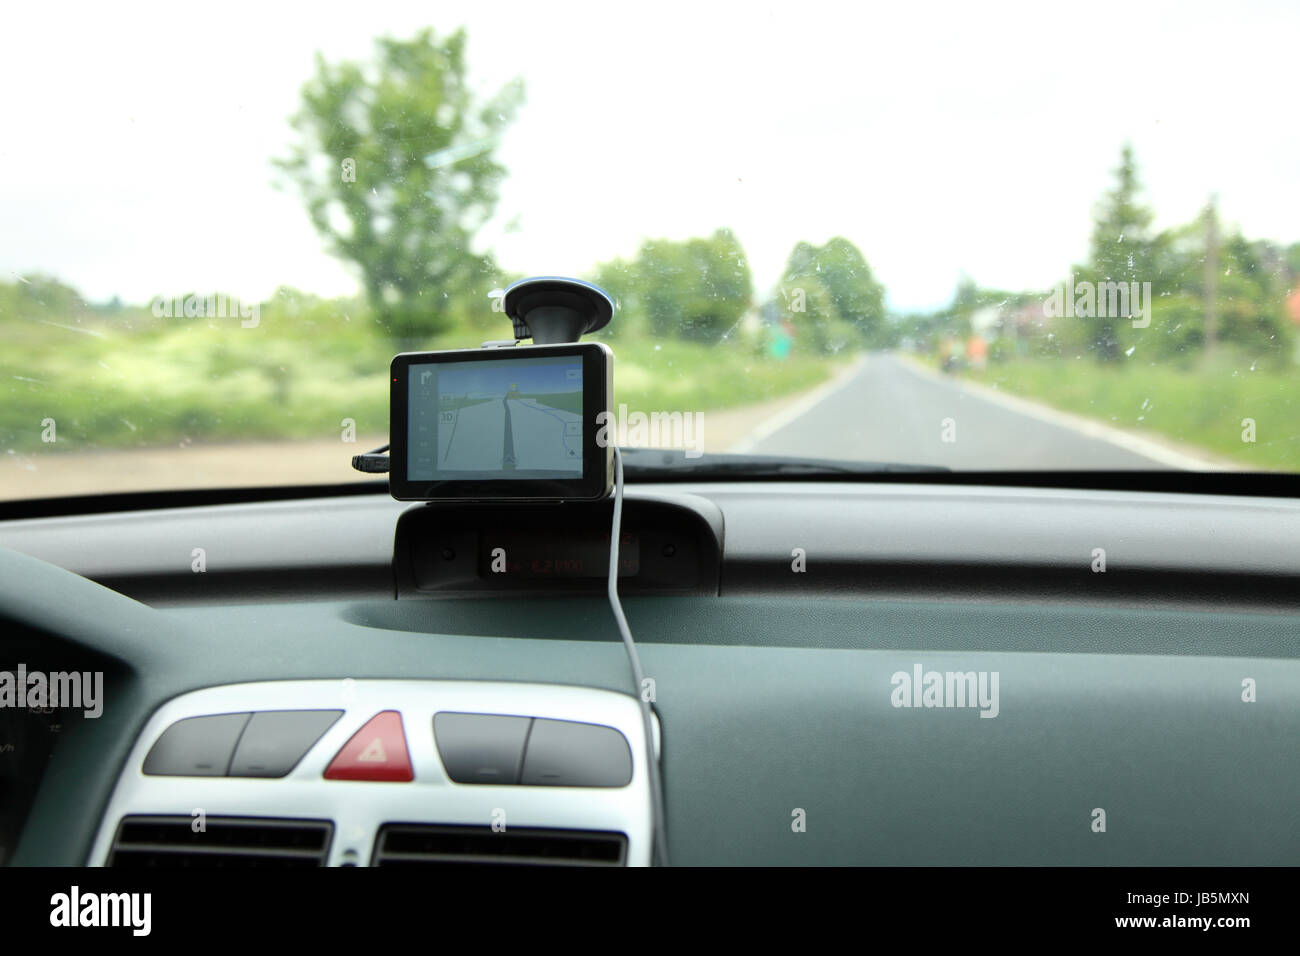 car dashboard and satelite navigation system auto gps panel device - Stock Image